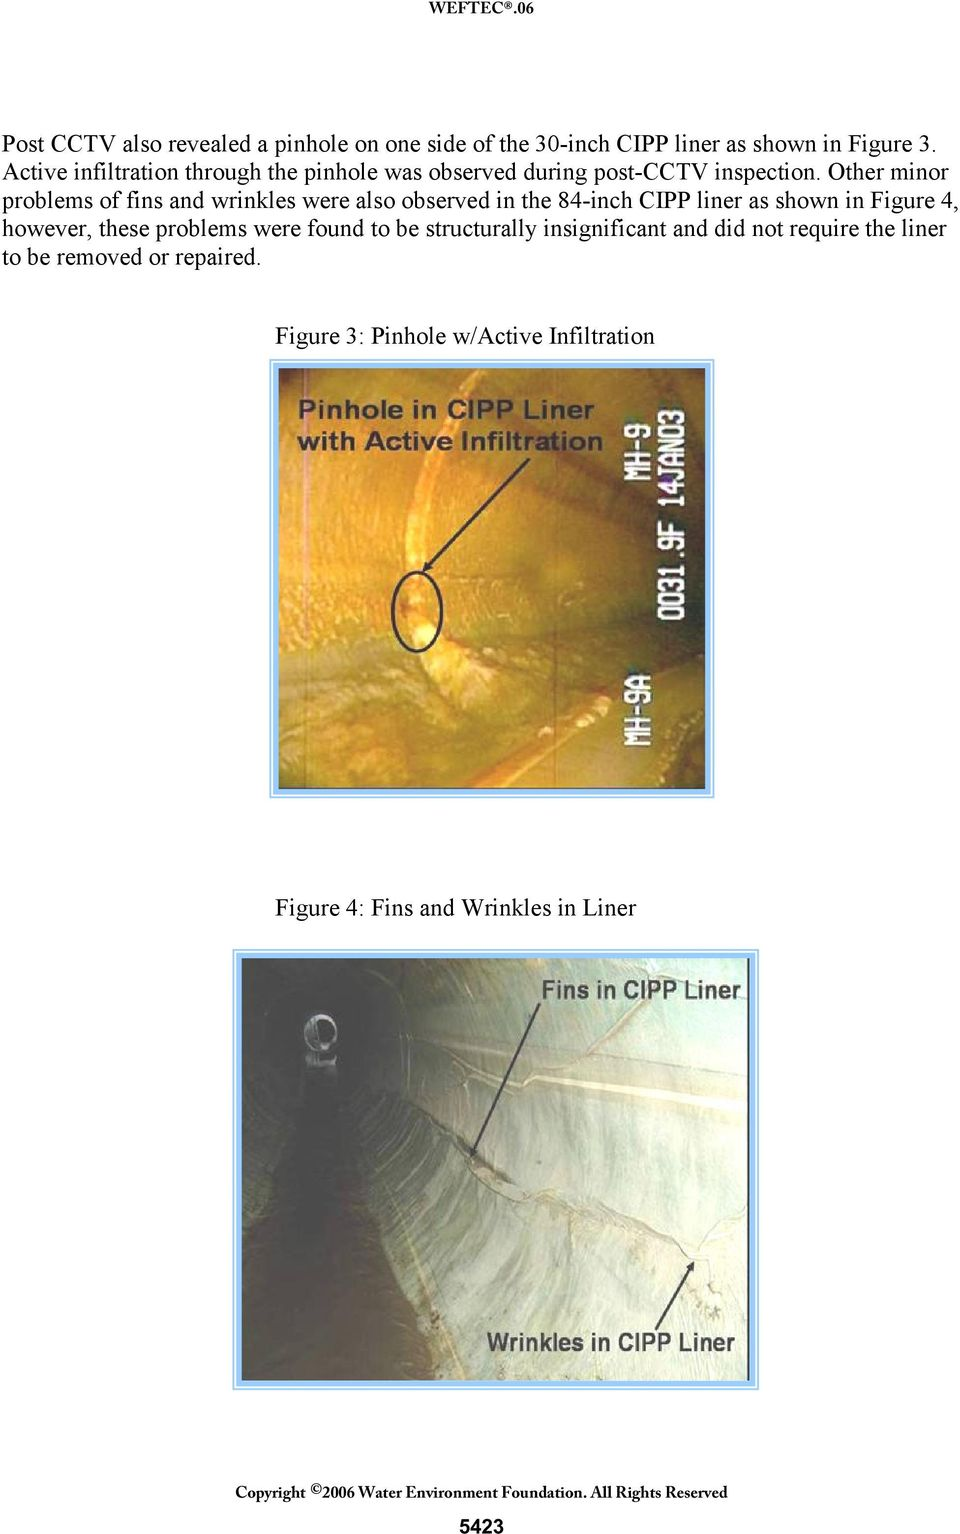 Other minor problems of fins and wrinkles were also observed in the 84-inch CIPP liner as shown in Figure 4, however,